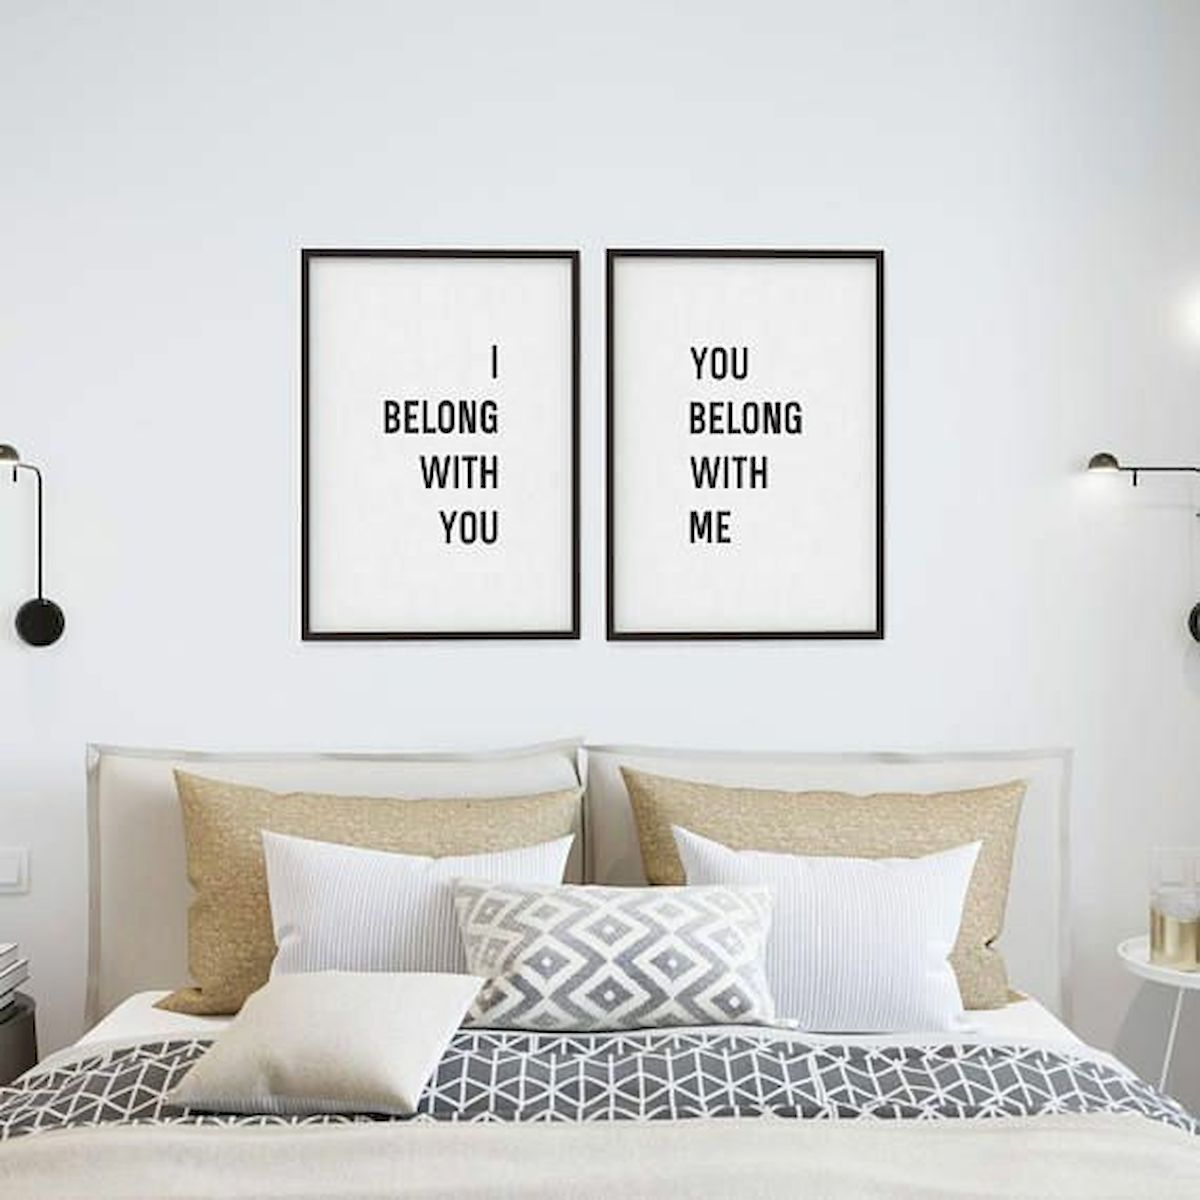 70 Simple Wall Bedroom Decor and Design Ideas (39)